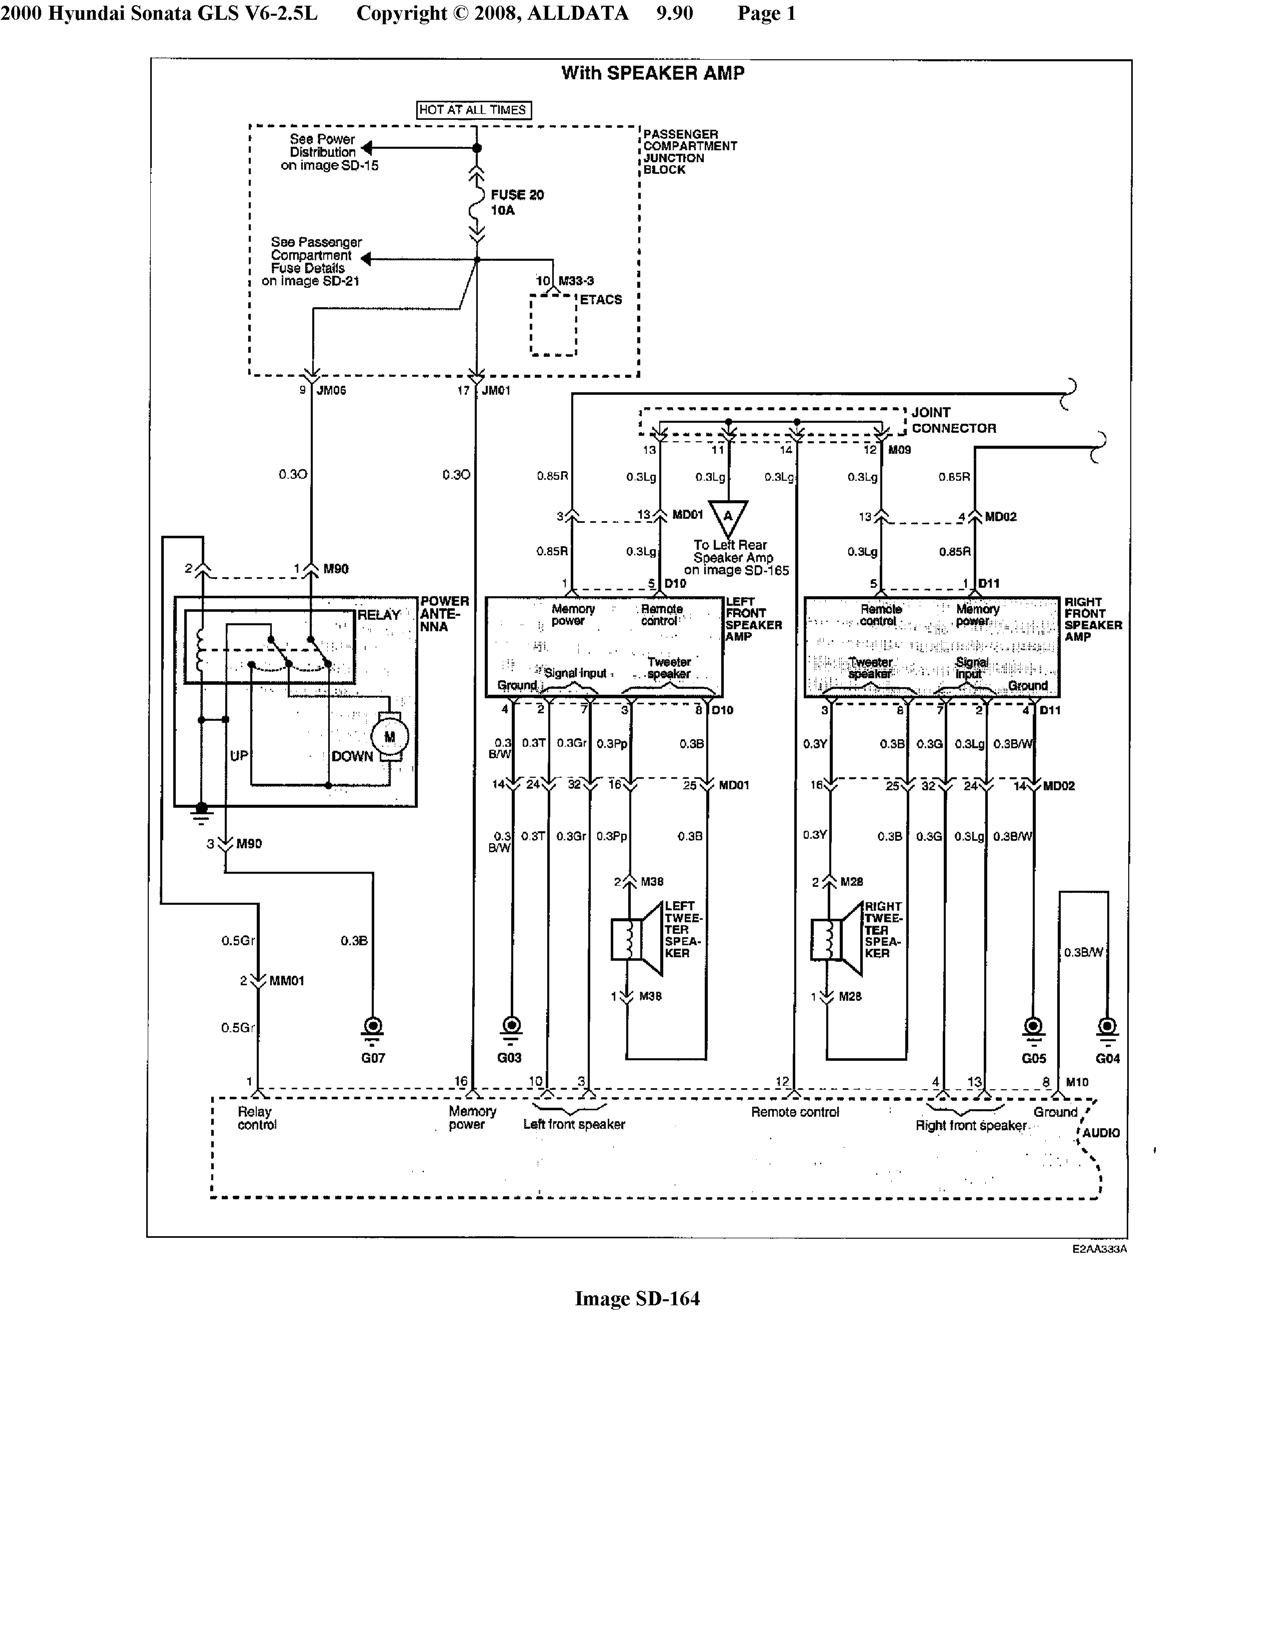 Wiring Diagram For 2001 Hyundai Accent Stereo